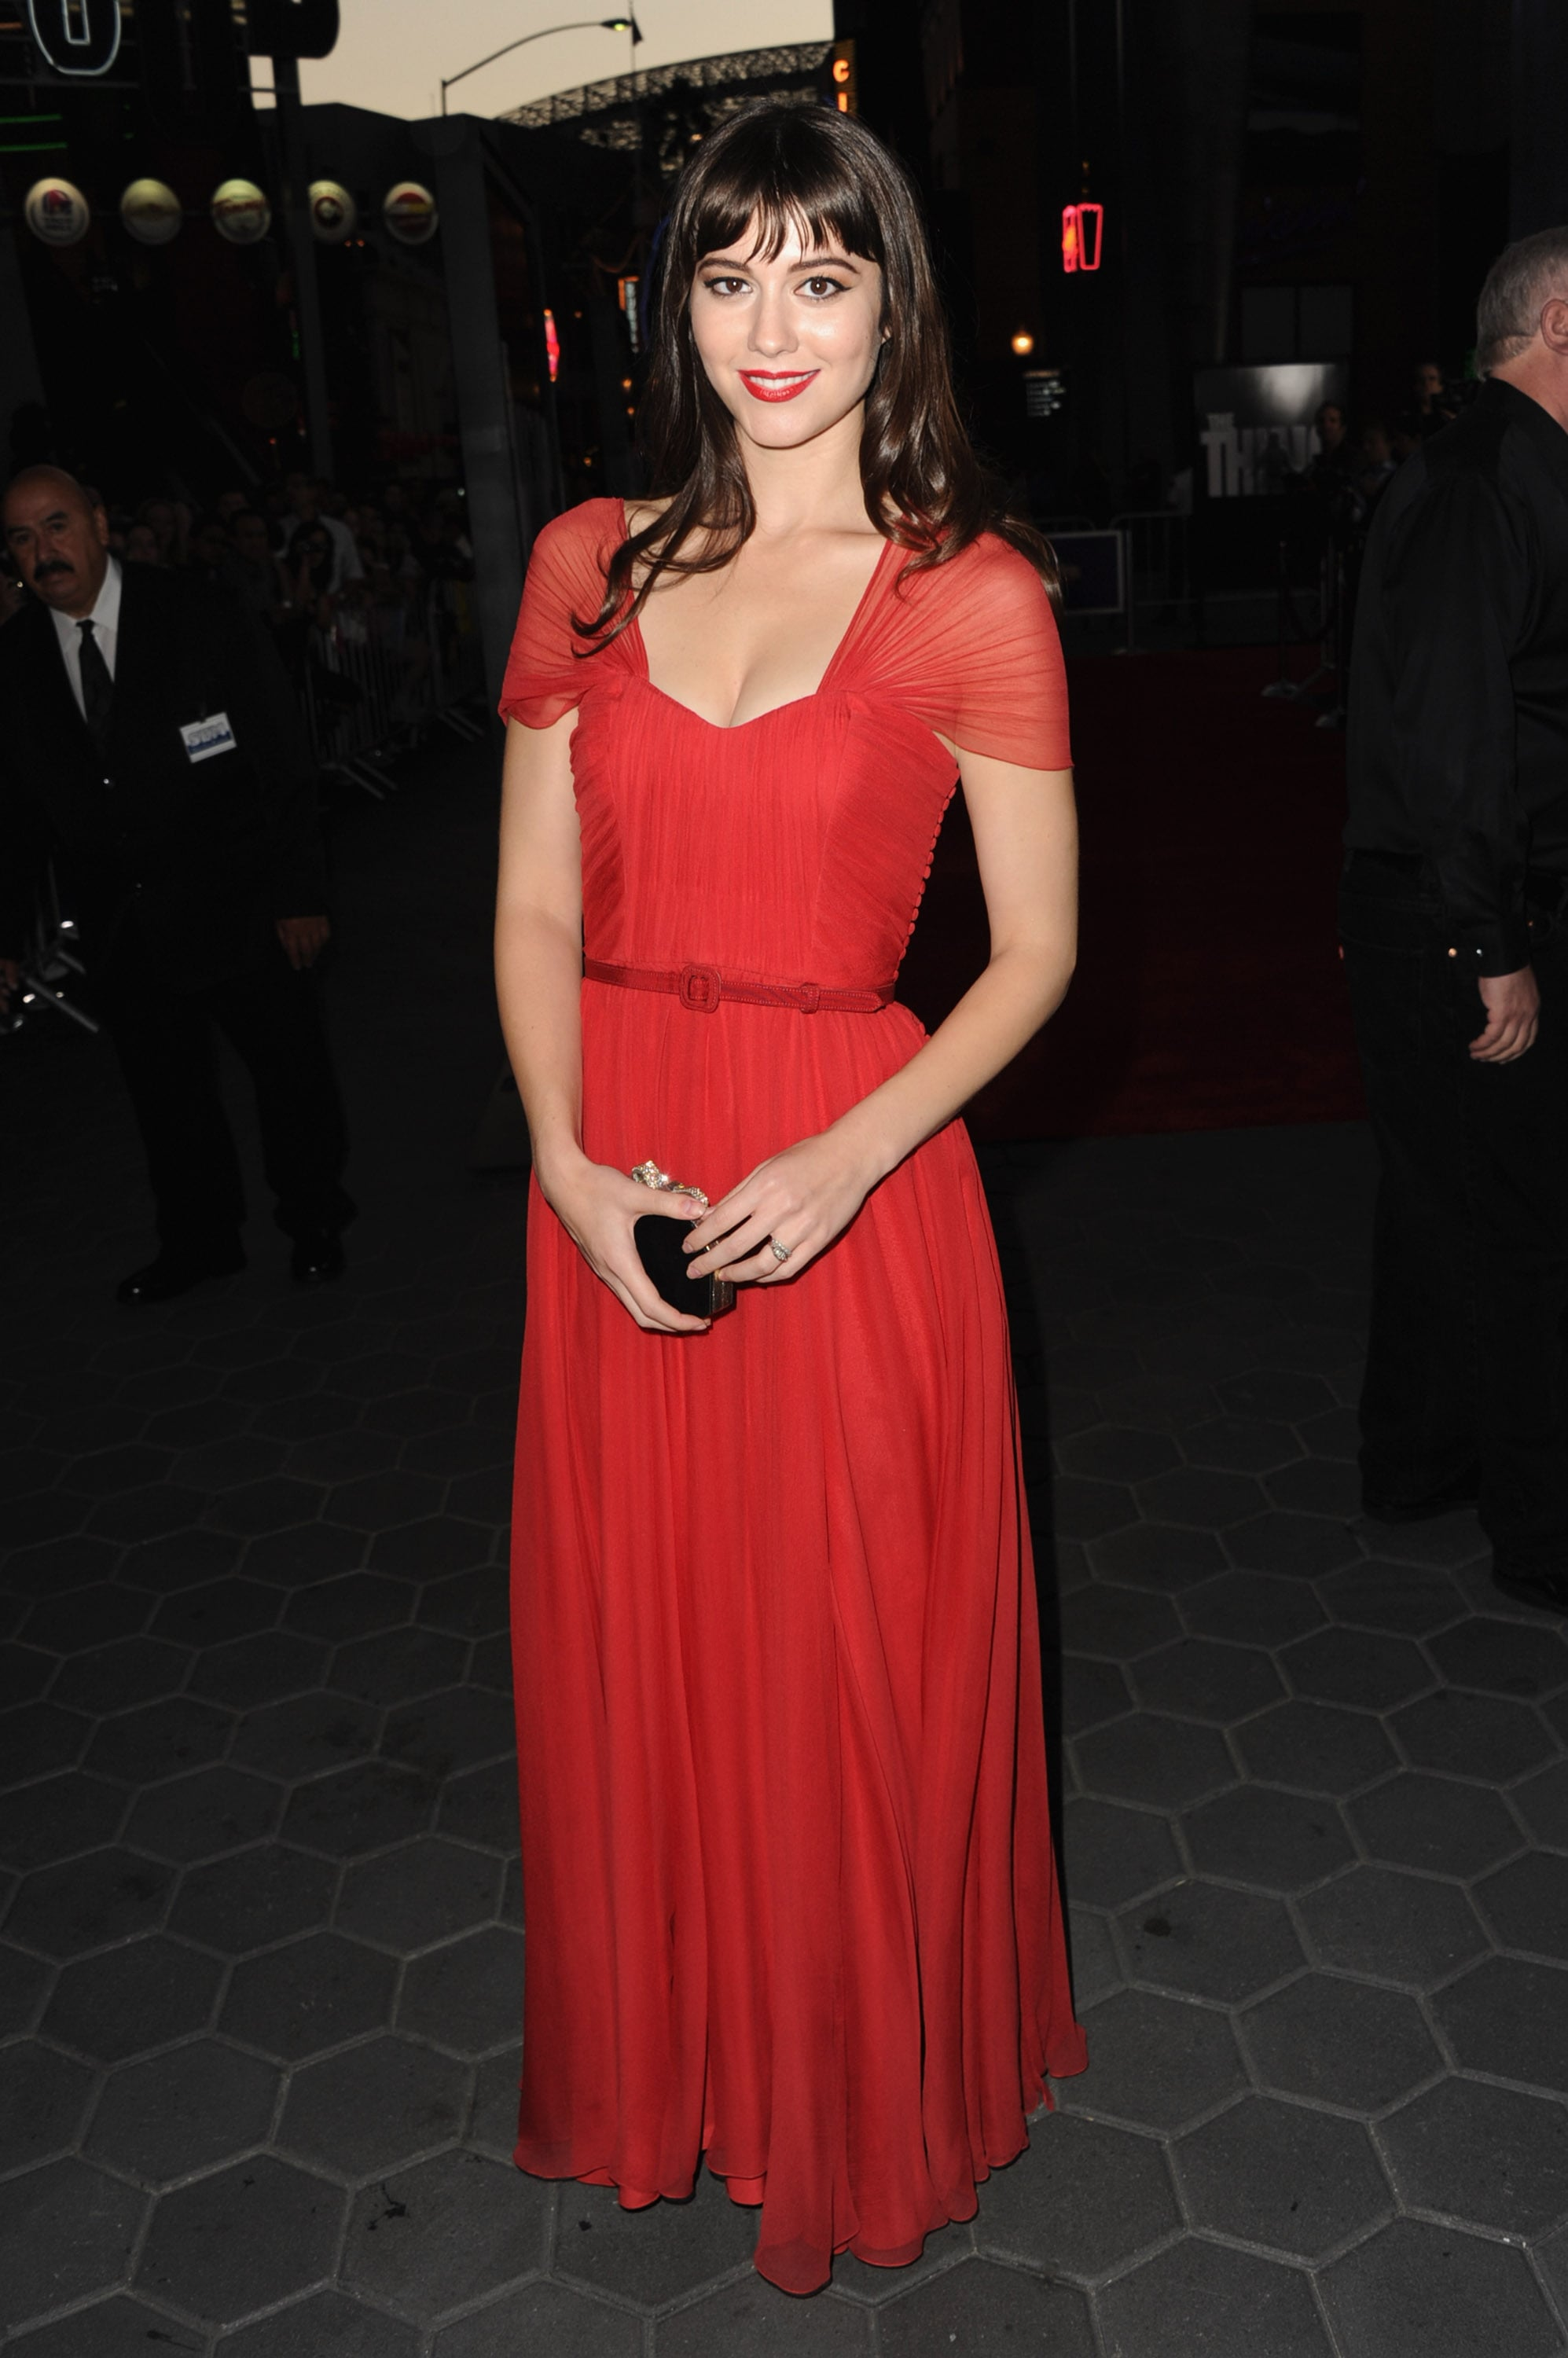 Mary Elizabeth Winstead wowed in red at the premiere of The Thing in LA.